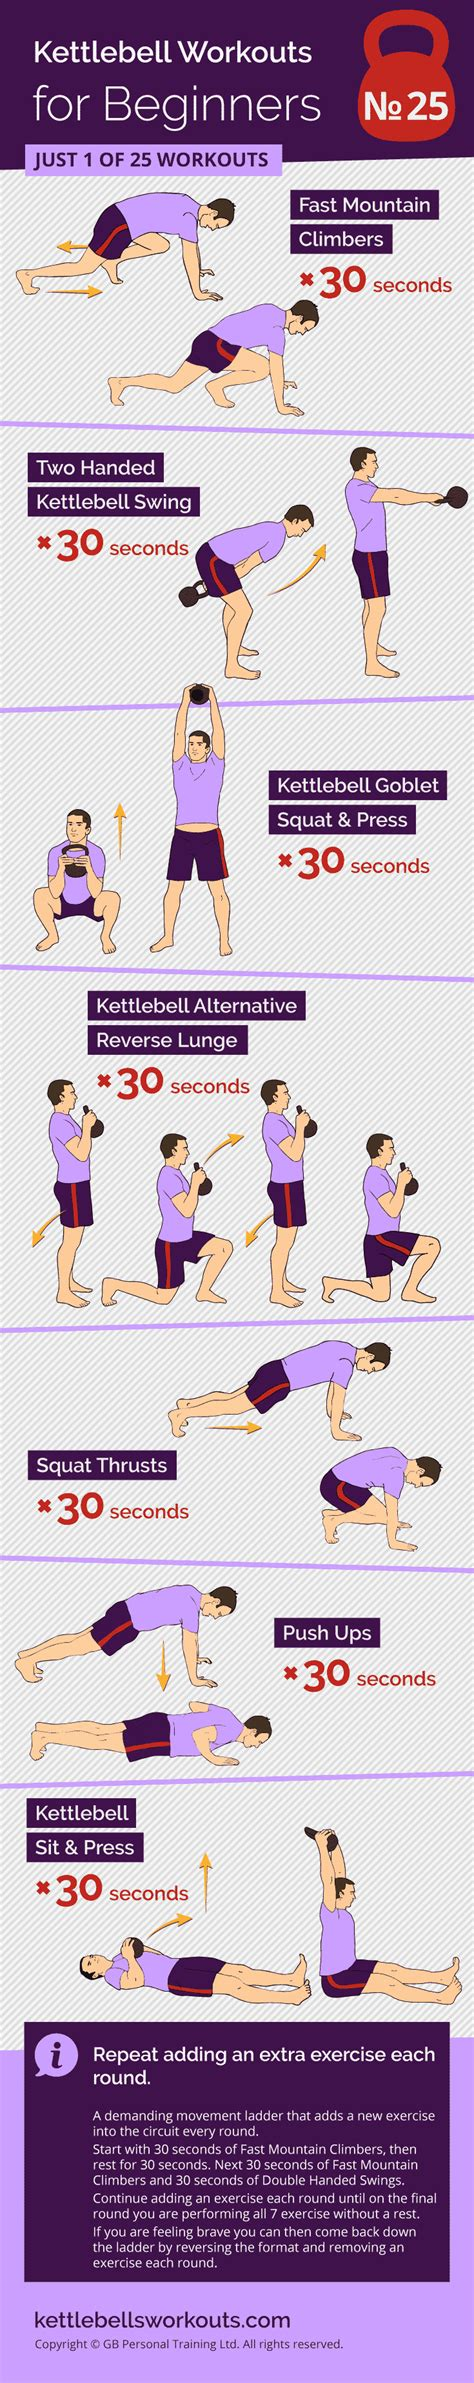 kettlebell ladder workout movement monster exercises workouts beginners handed